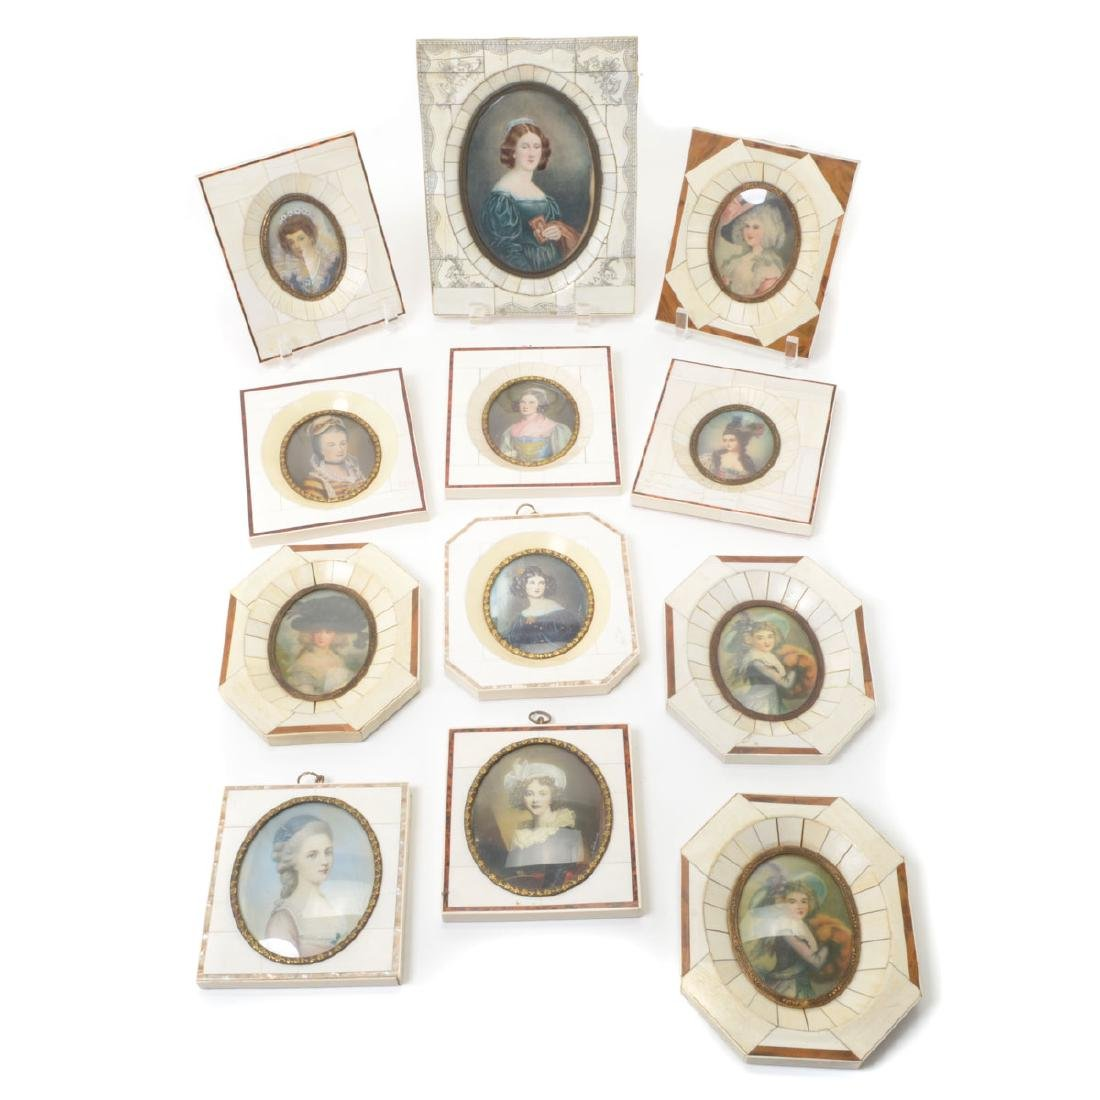 Twelve Miniature Portraits in Piano Key Frames